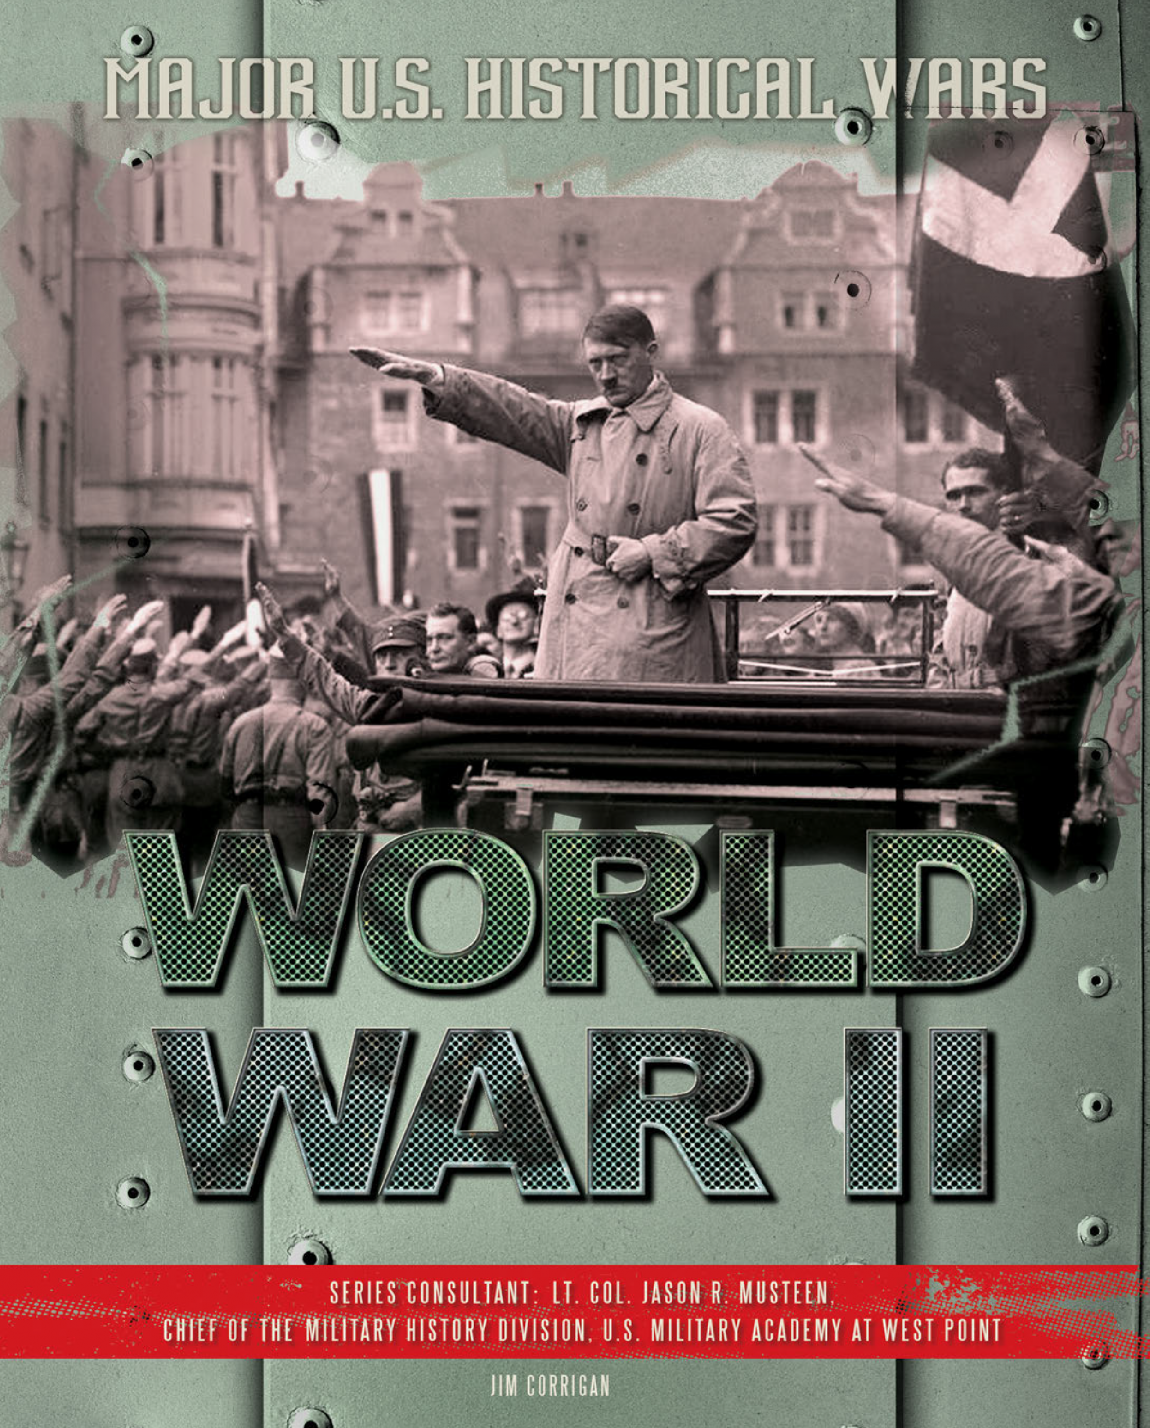 WW2-01.png